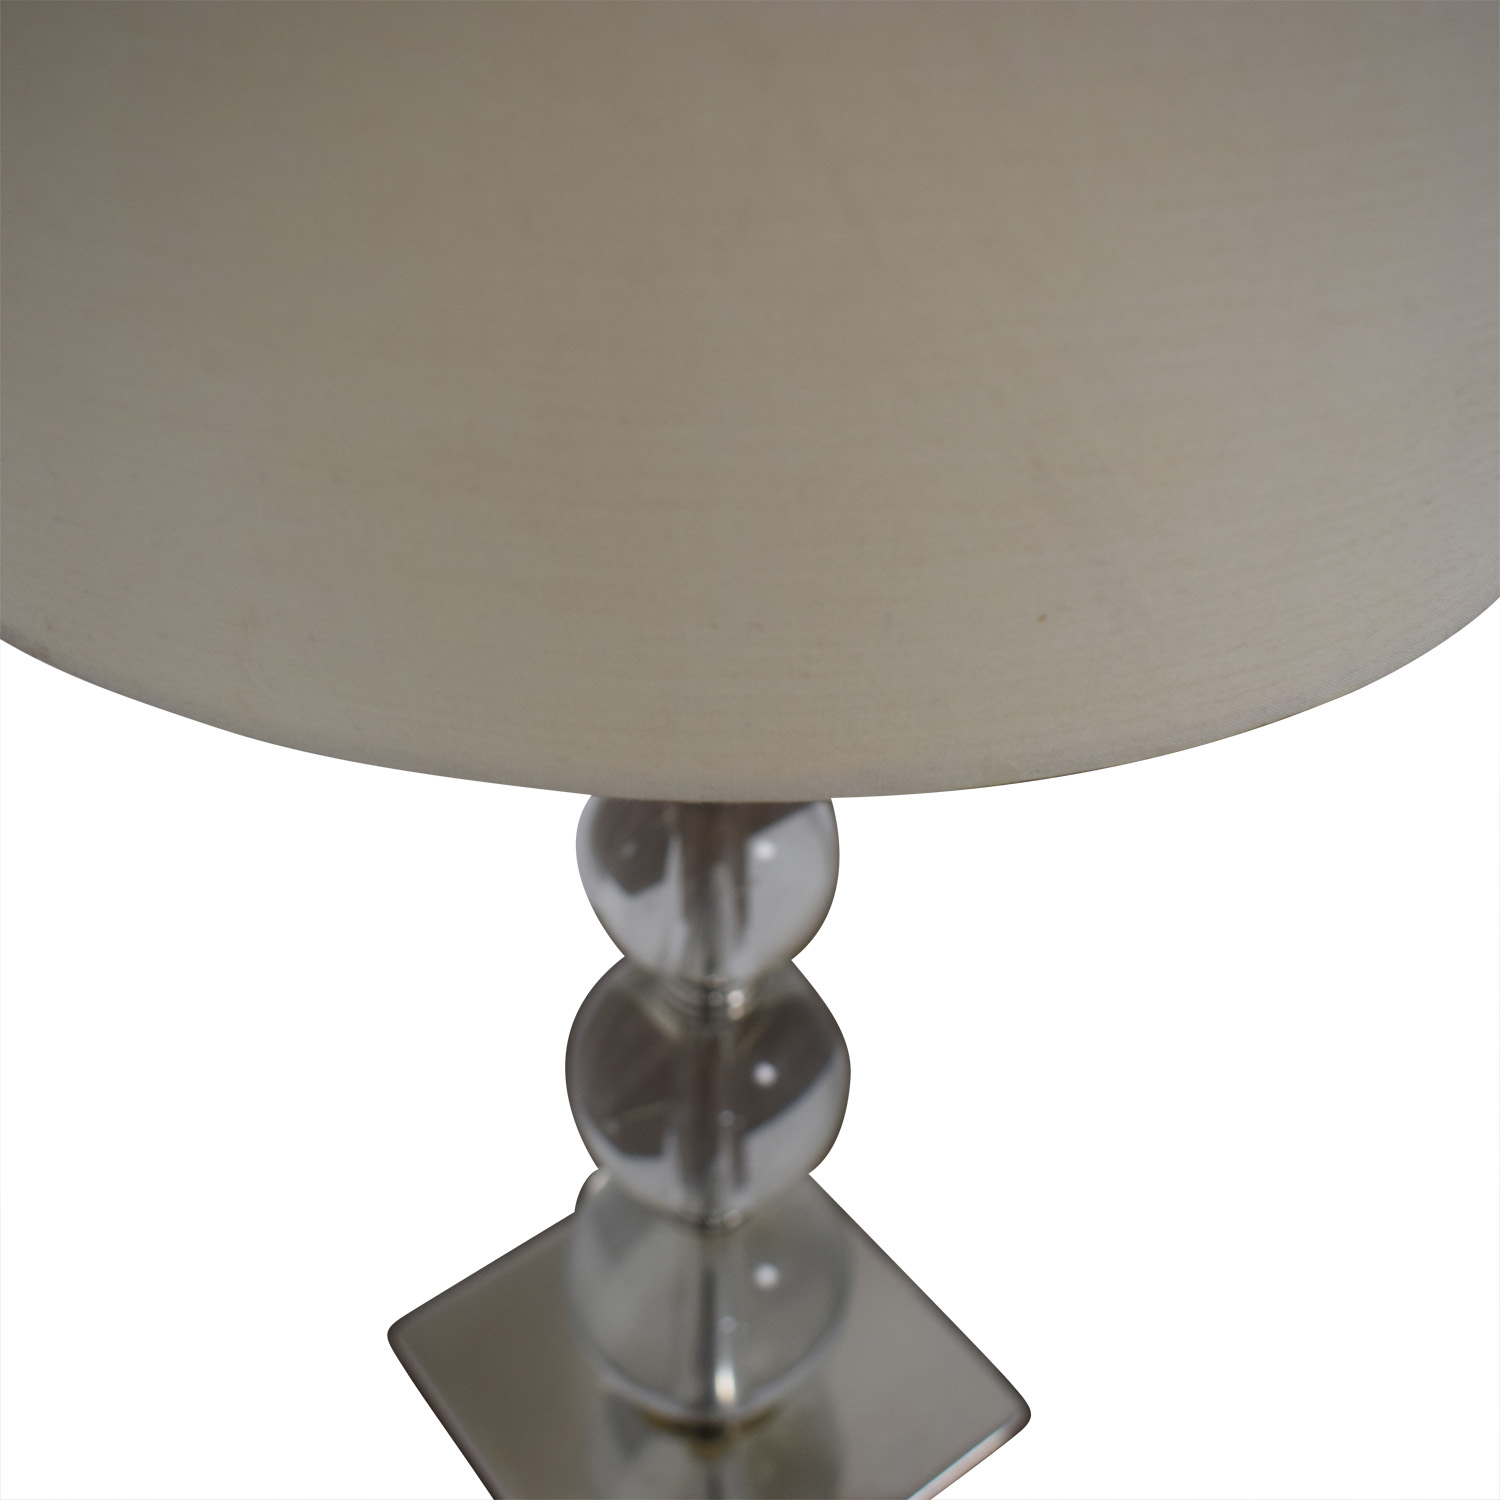 IKEA IKEA Roxmo Table Lamp Decor